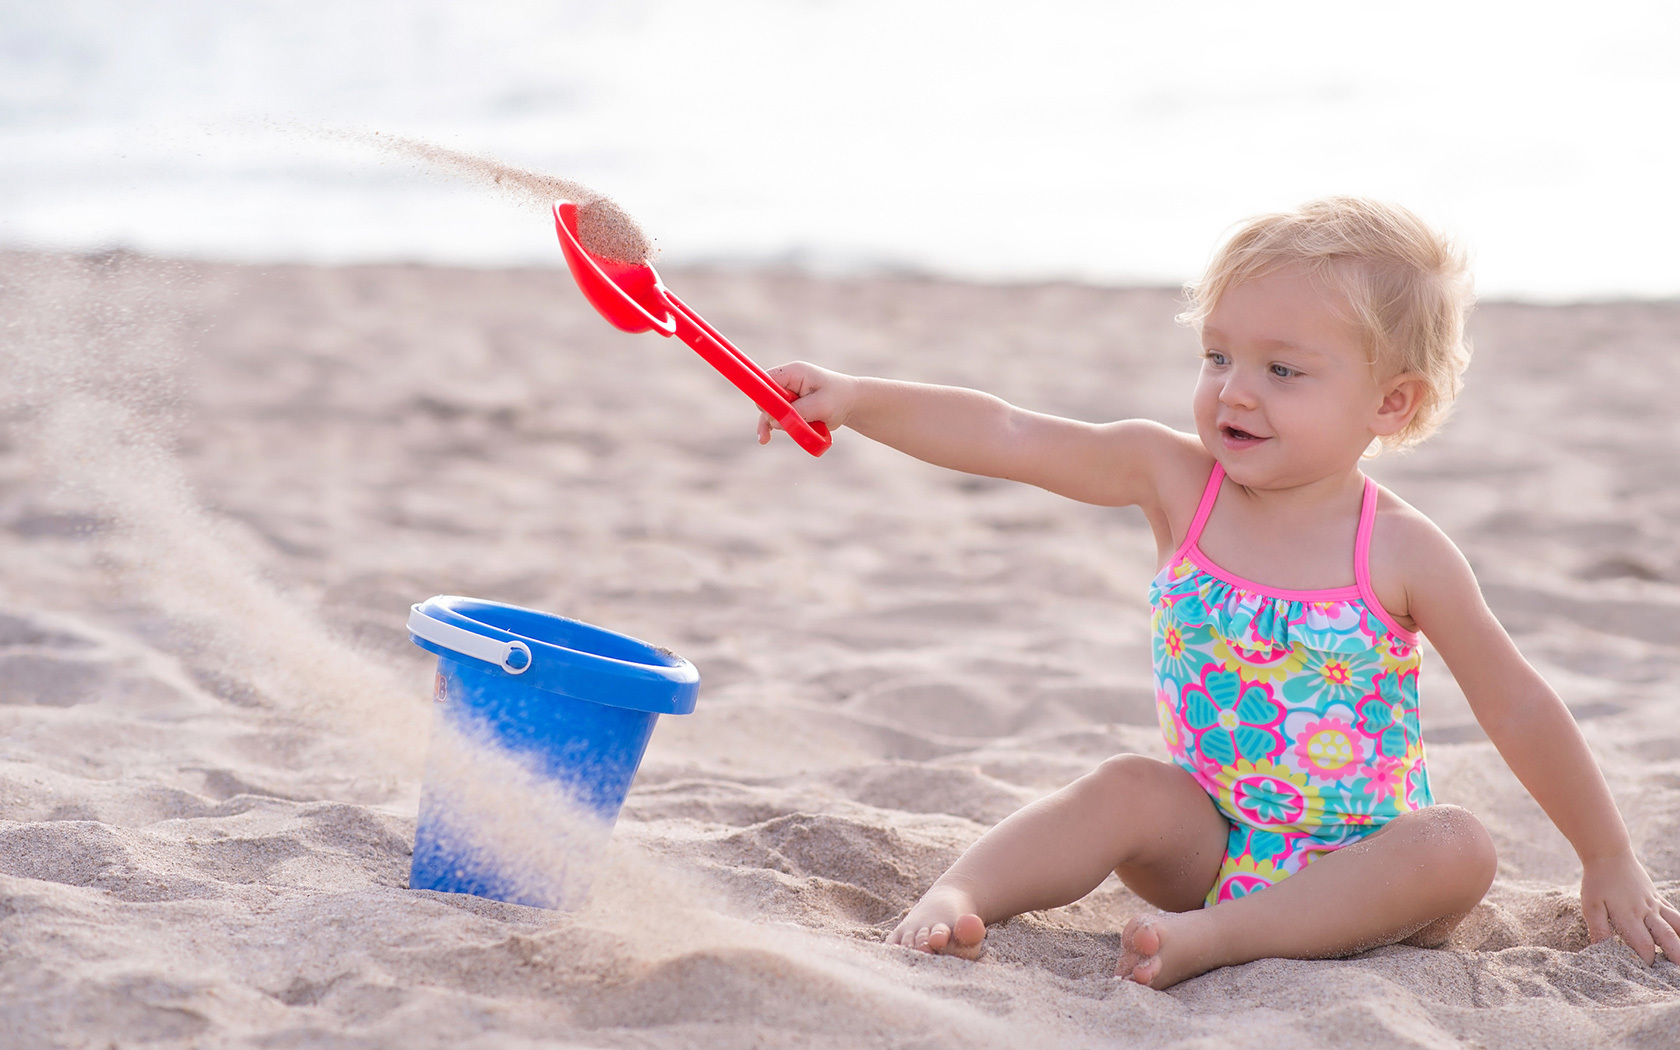 infant girl playing in the sand with a shovel and pale